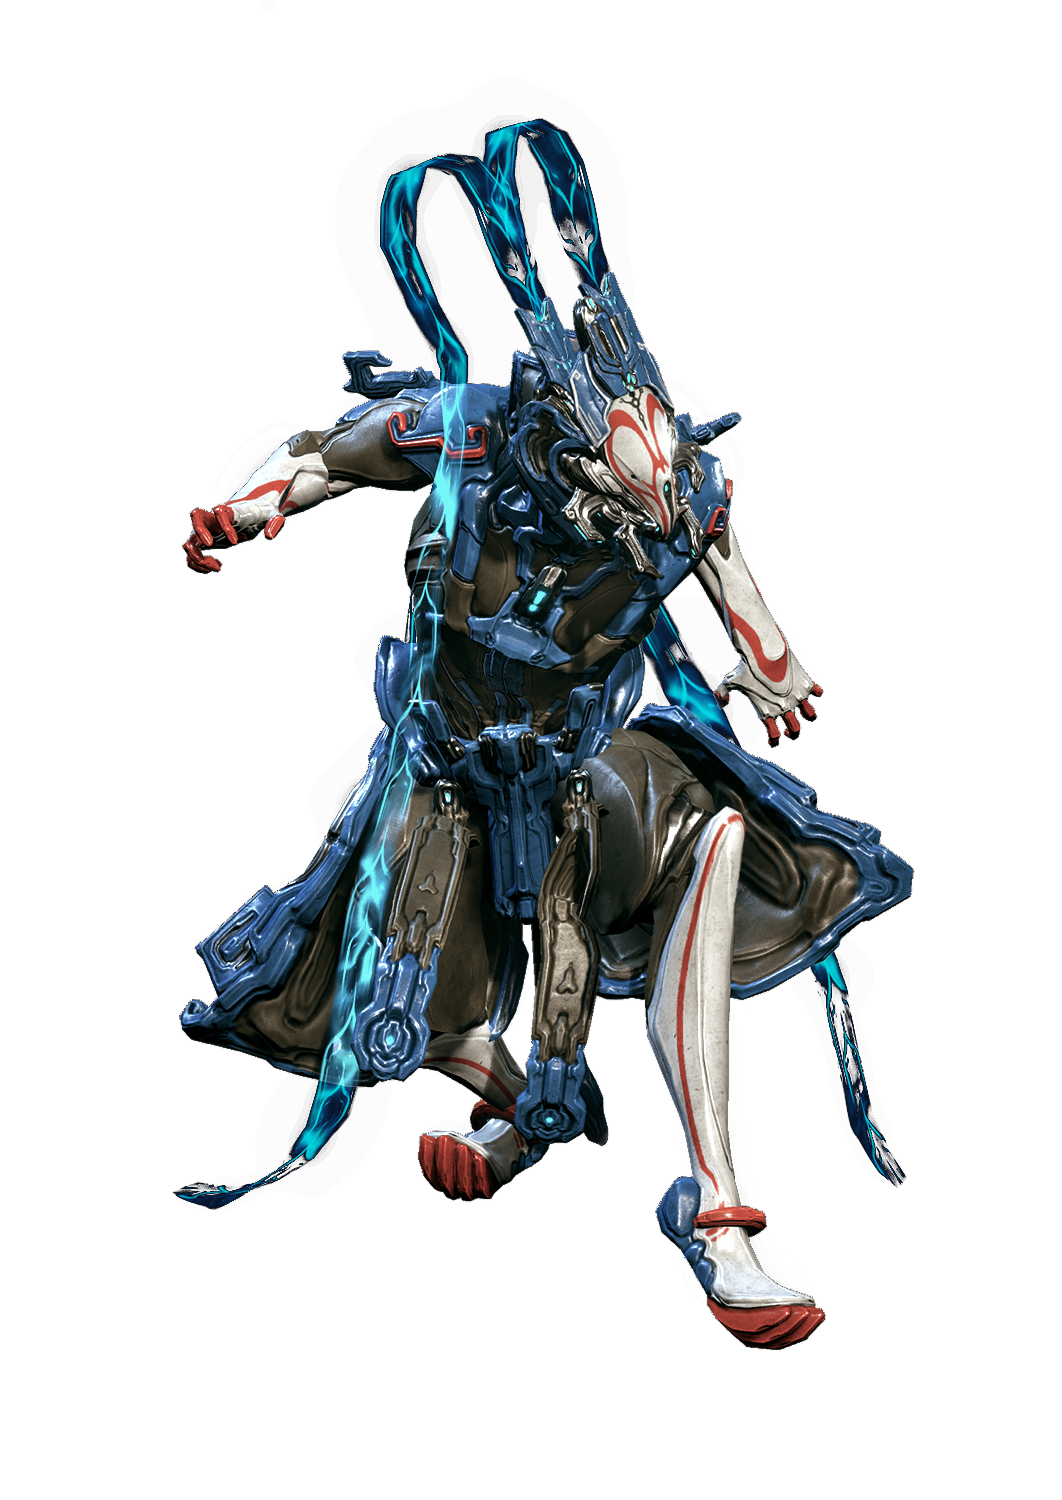 WUKONG is the Divine of Warframes. Hailing as a god from an ancient time, he causes mischief and destruction with his omnipotent abilities.